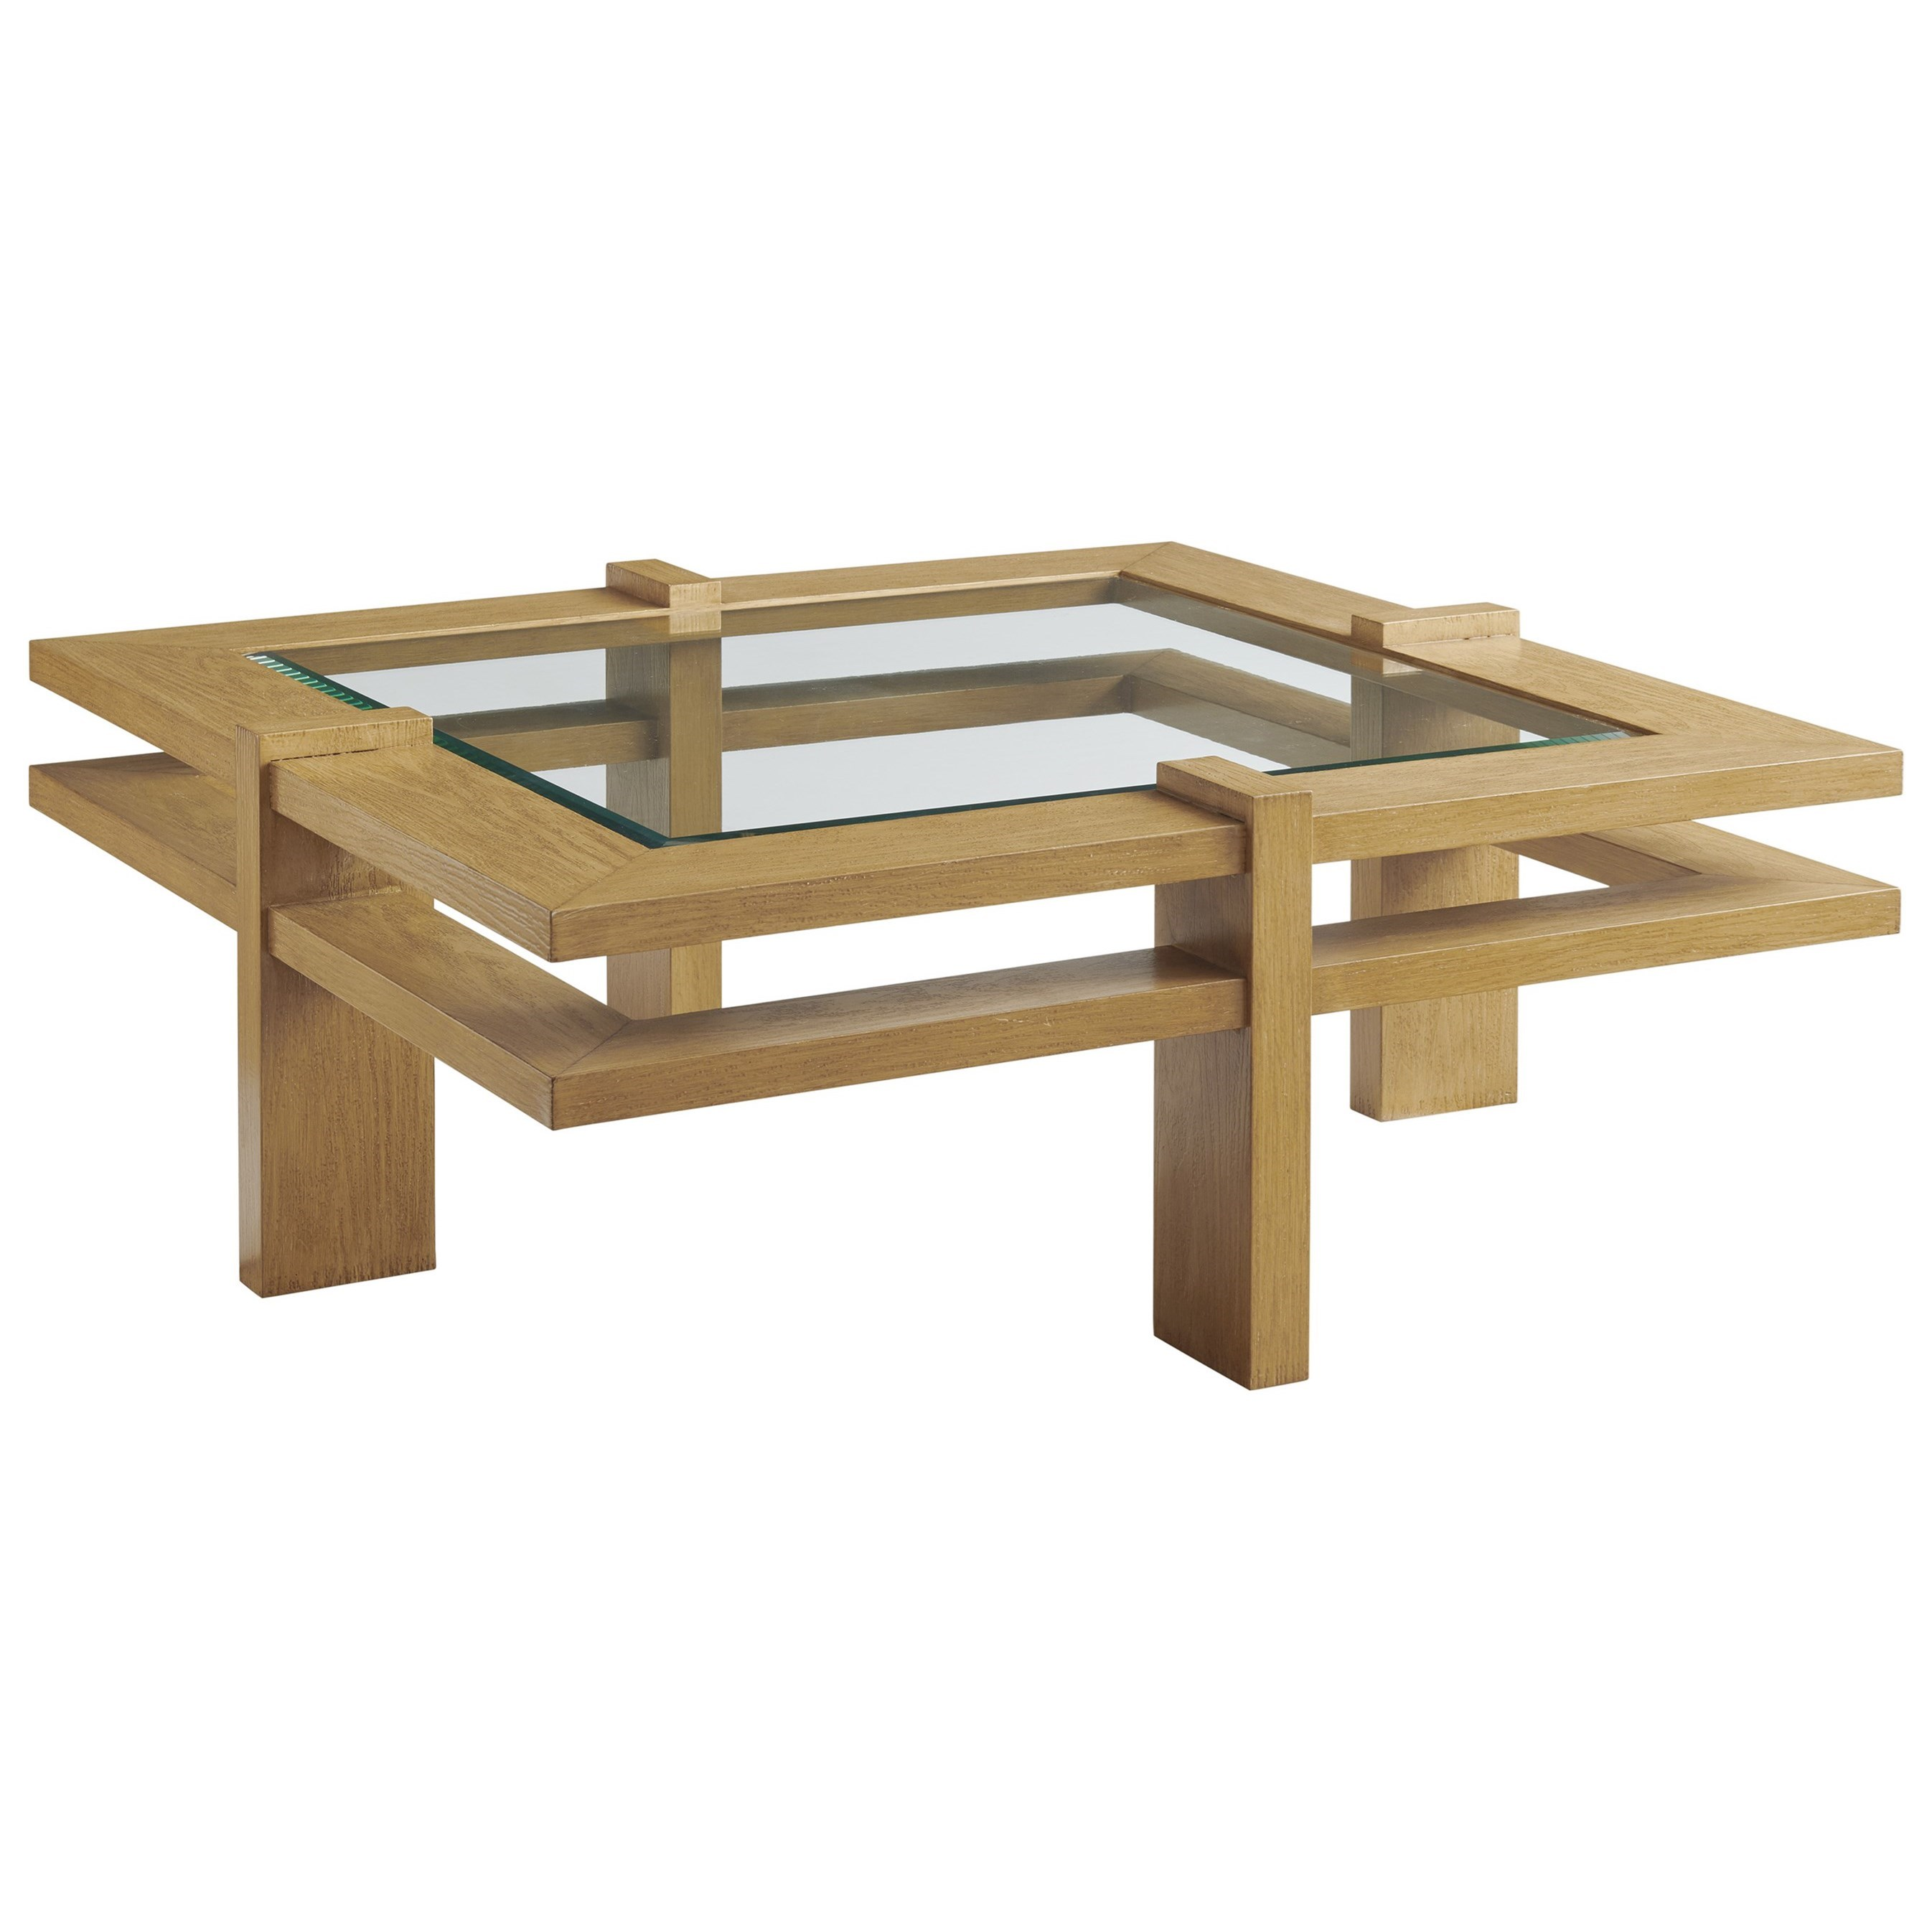 Los Altos Valley View Square Cocktail Table by Tommy Bahama Outdoor Living at Baer's Furniture